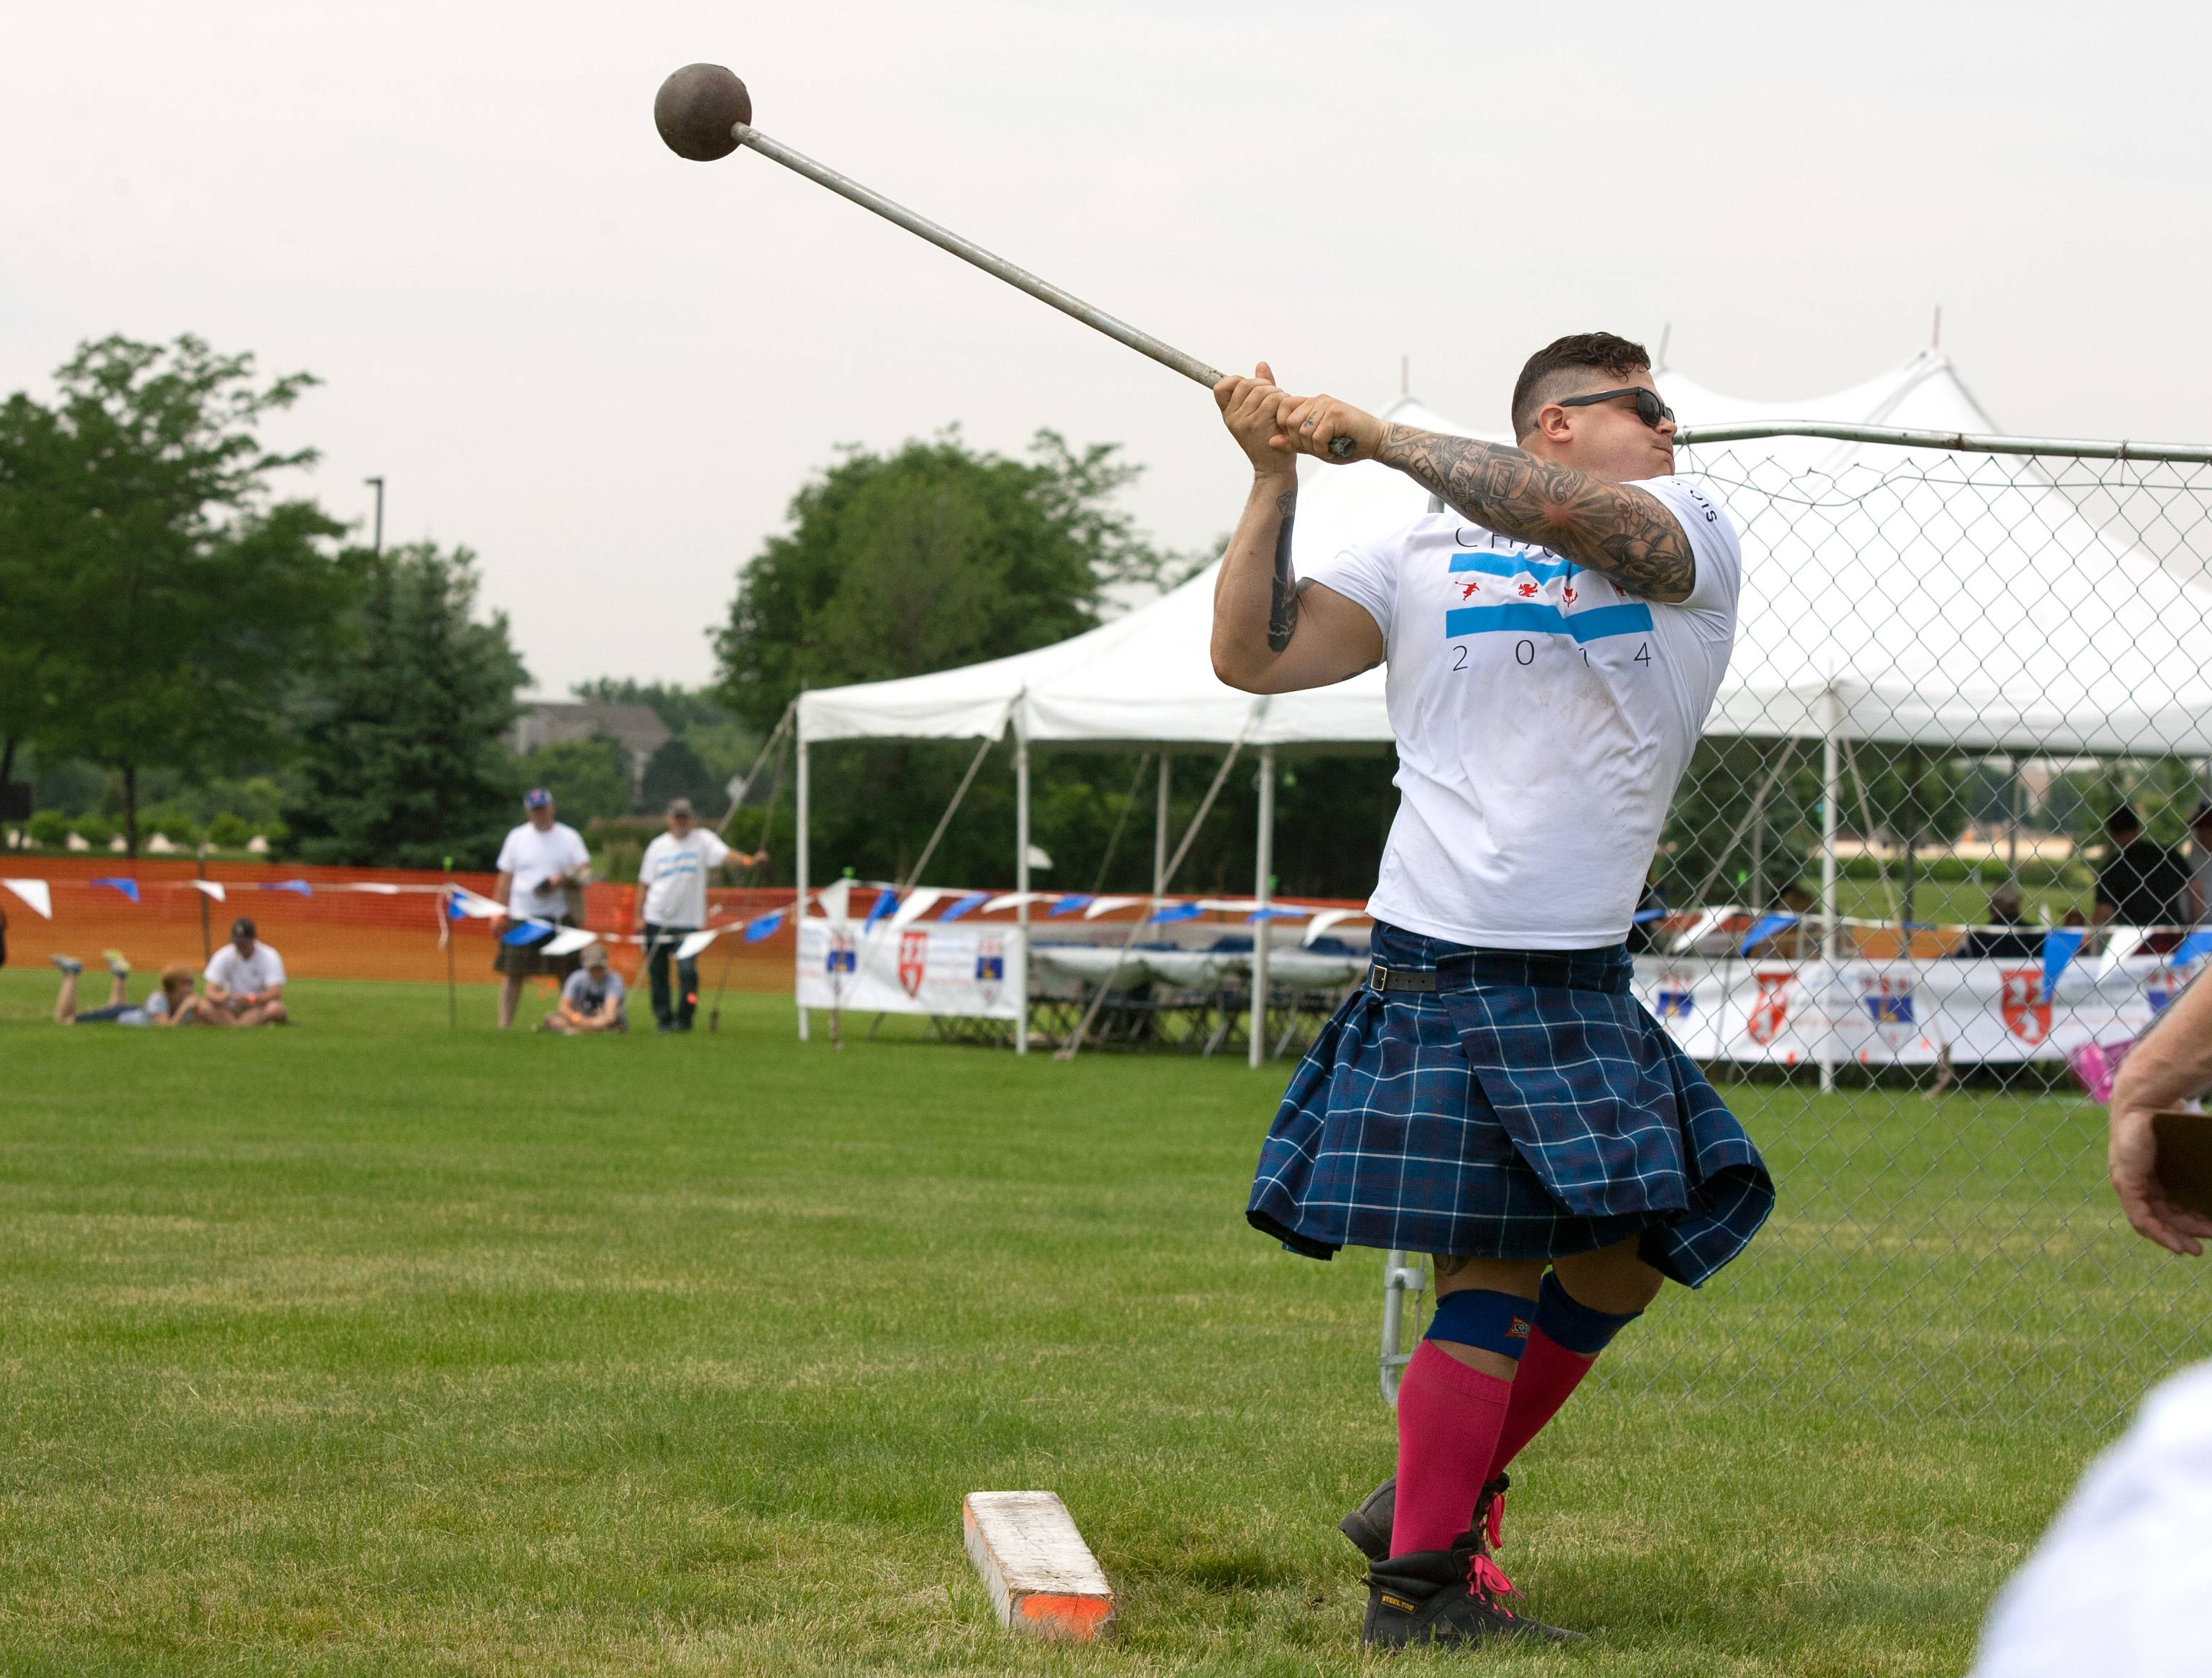 Matt Vincent of Baton Rouge, Louisiana, launches a 22-pound hammer during the Scottish Festival and Highland Games at Hamilton Lakes in Itasca.